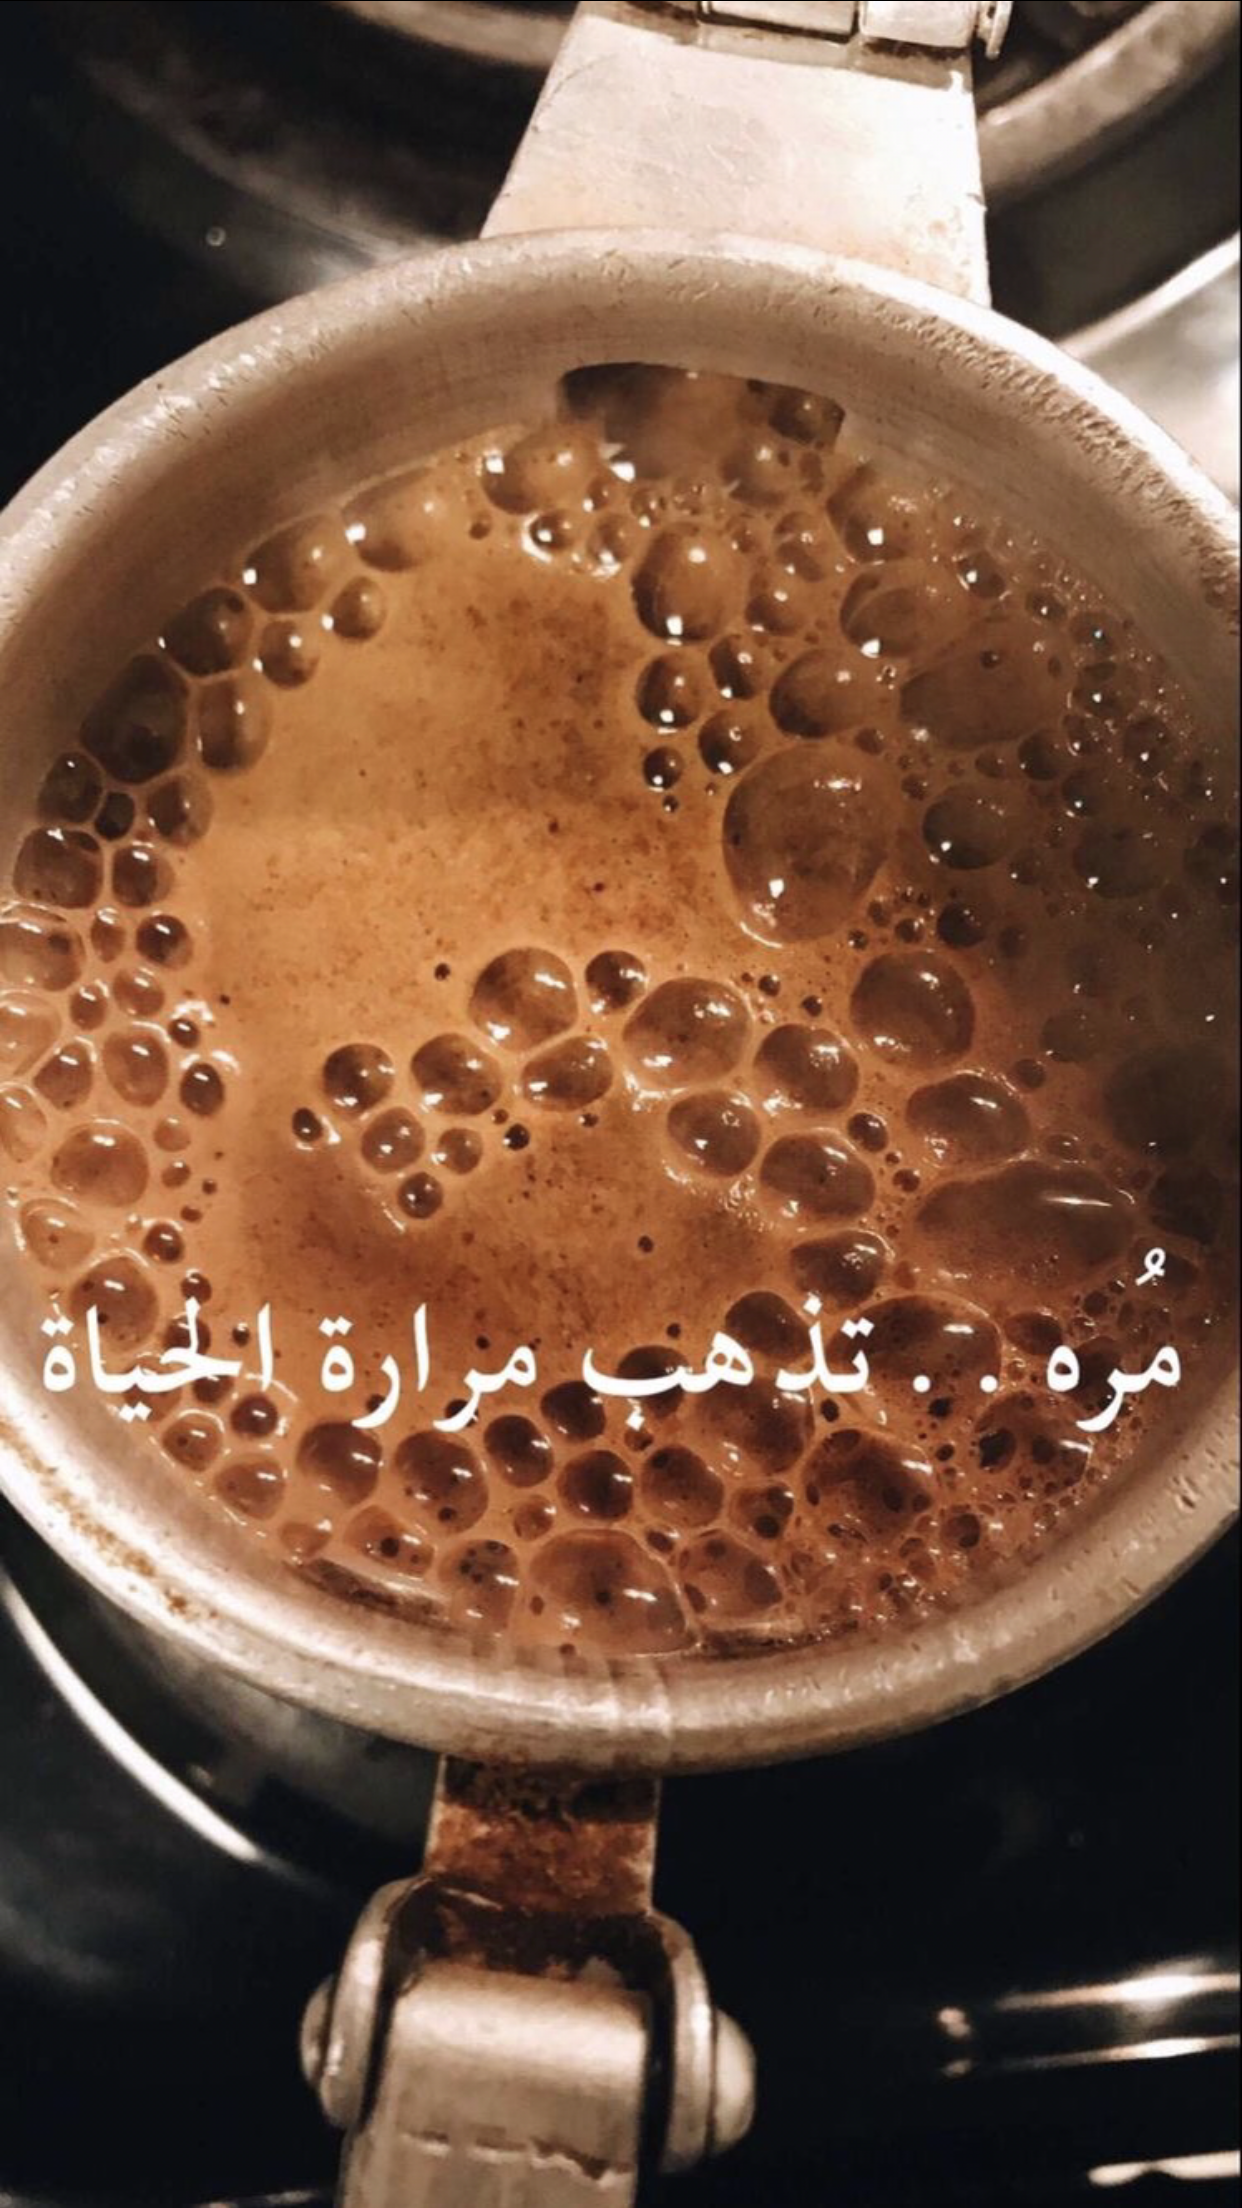 Pin By موضي البليهد On مختارات موضي البليهد Coffee Recipes Coffee Quotes Coffee Latte Art